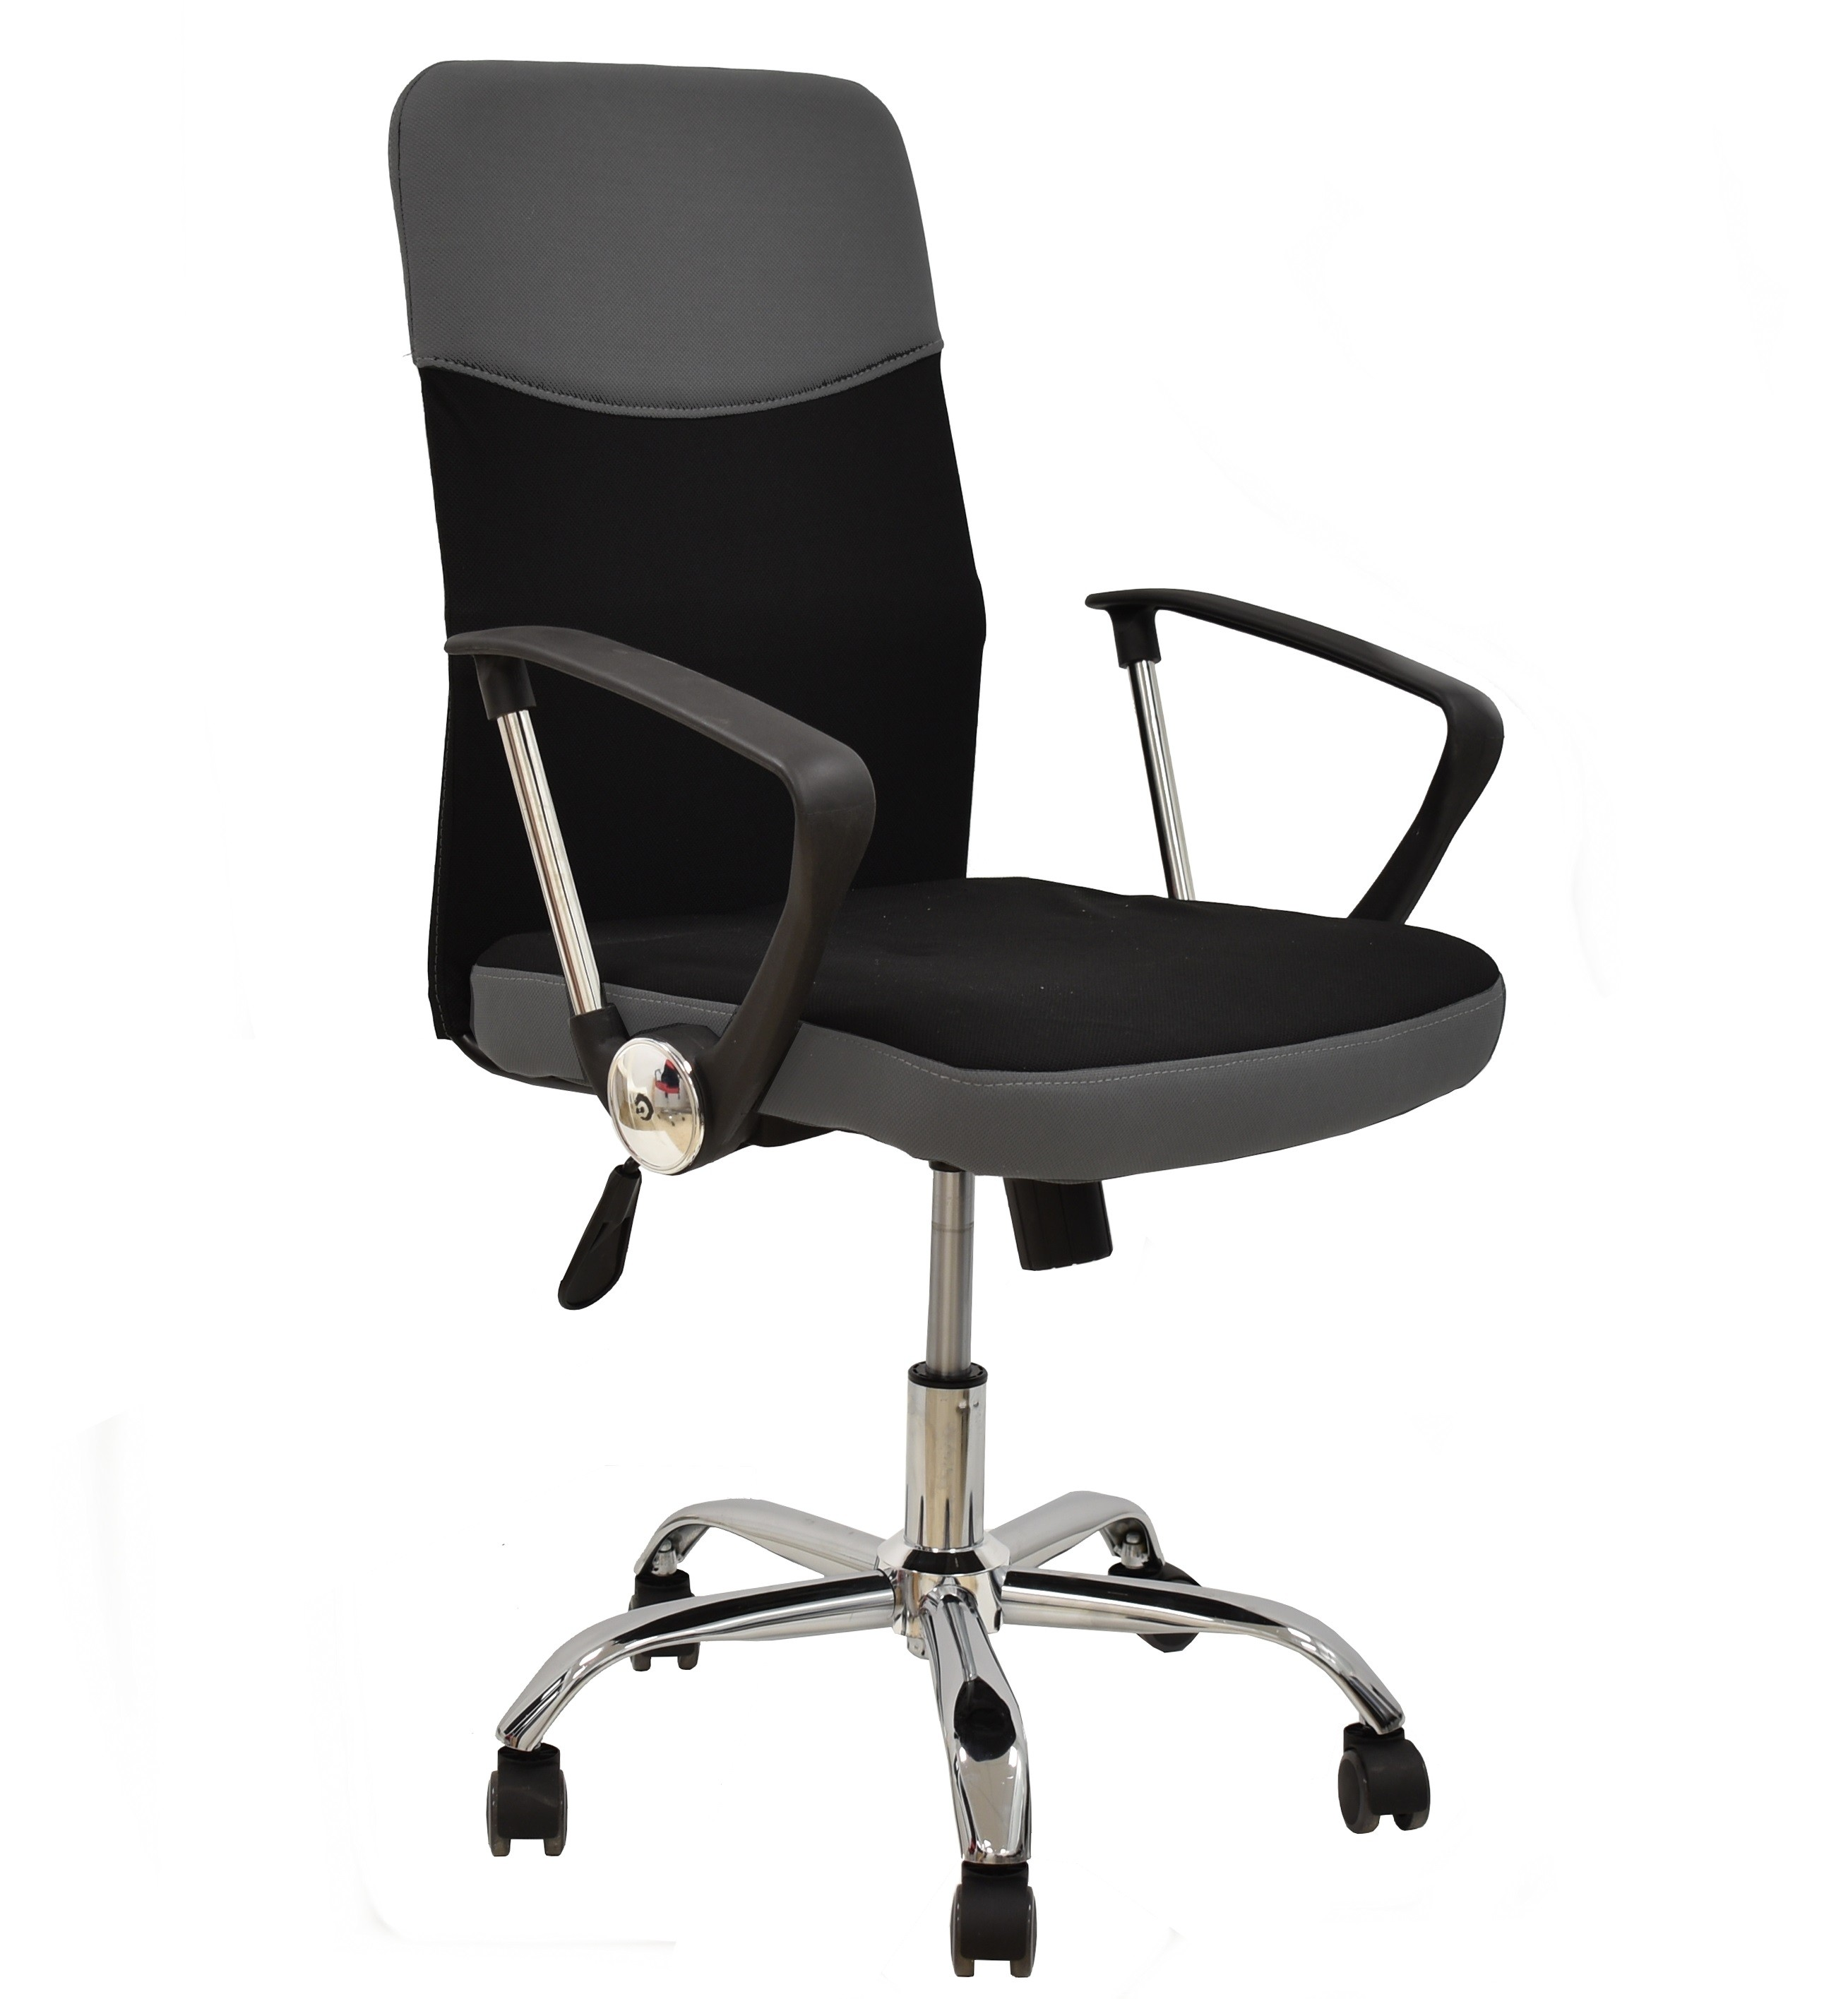 Office Armchair TANGO, Gas, Tilt, Fabric Black Gray